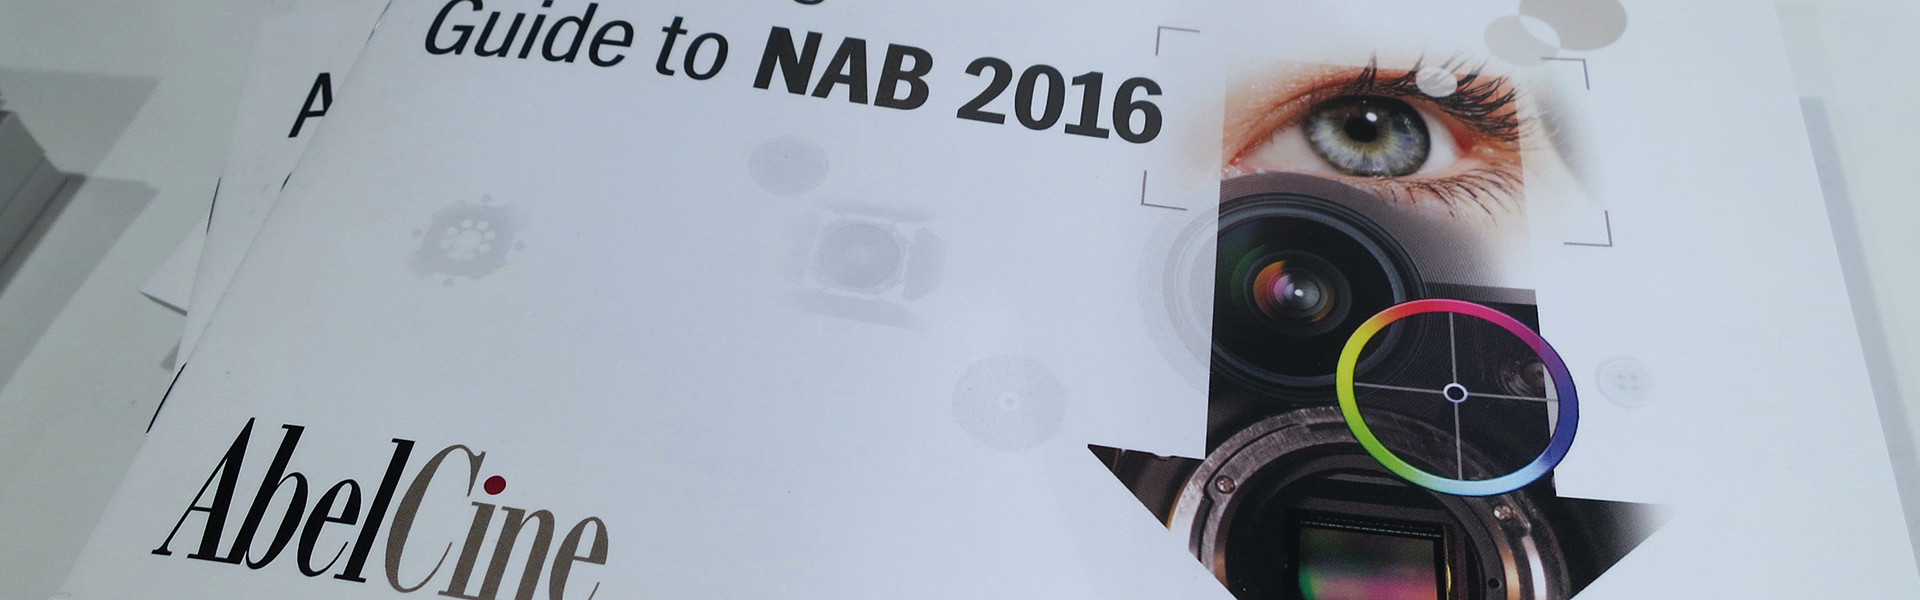 Header image for article NAB 2016 Tech Talks at the AbelCine Booth: Freefly